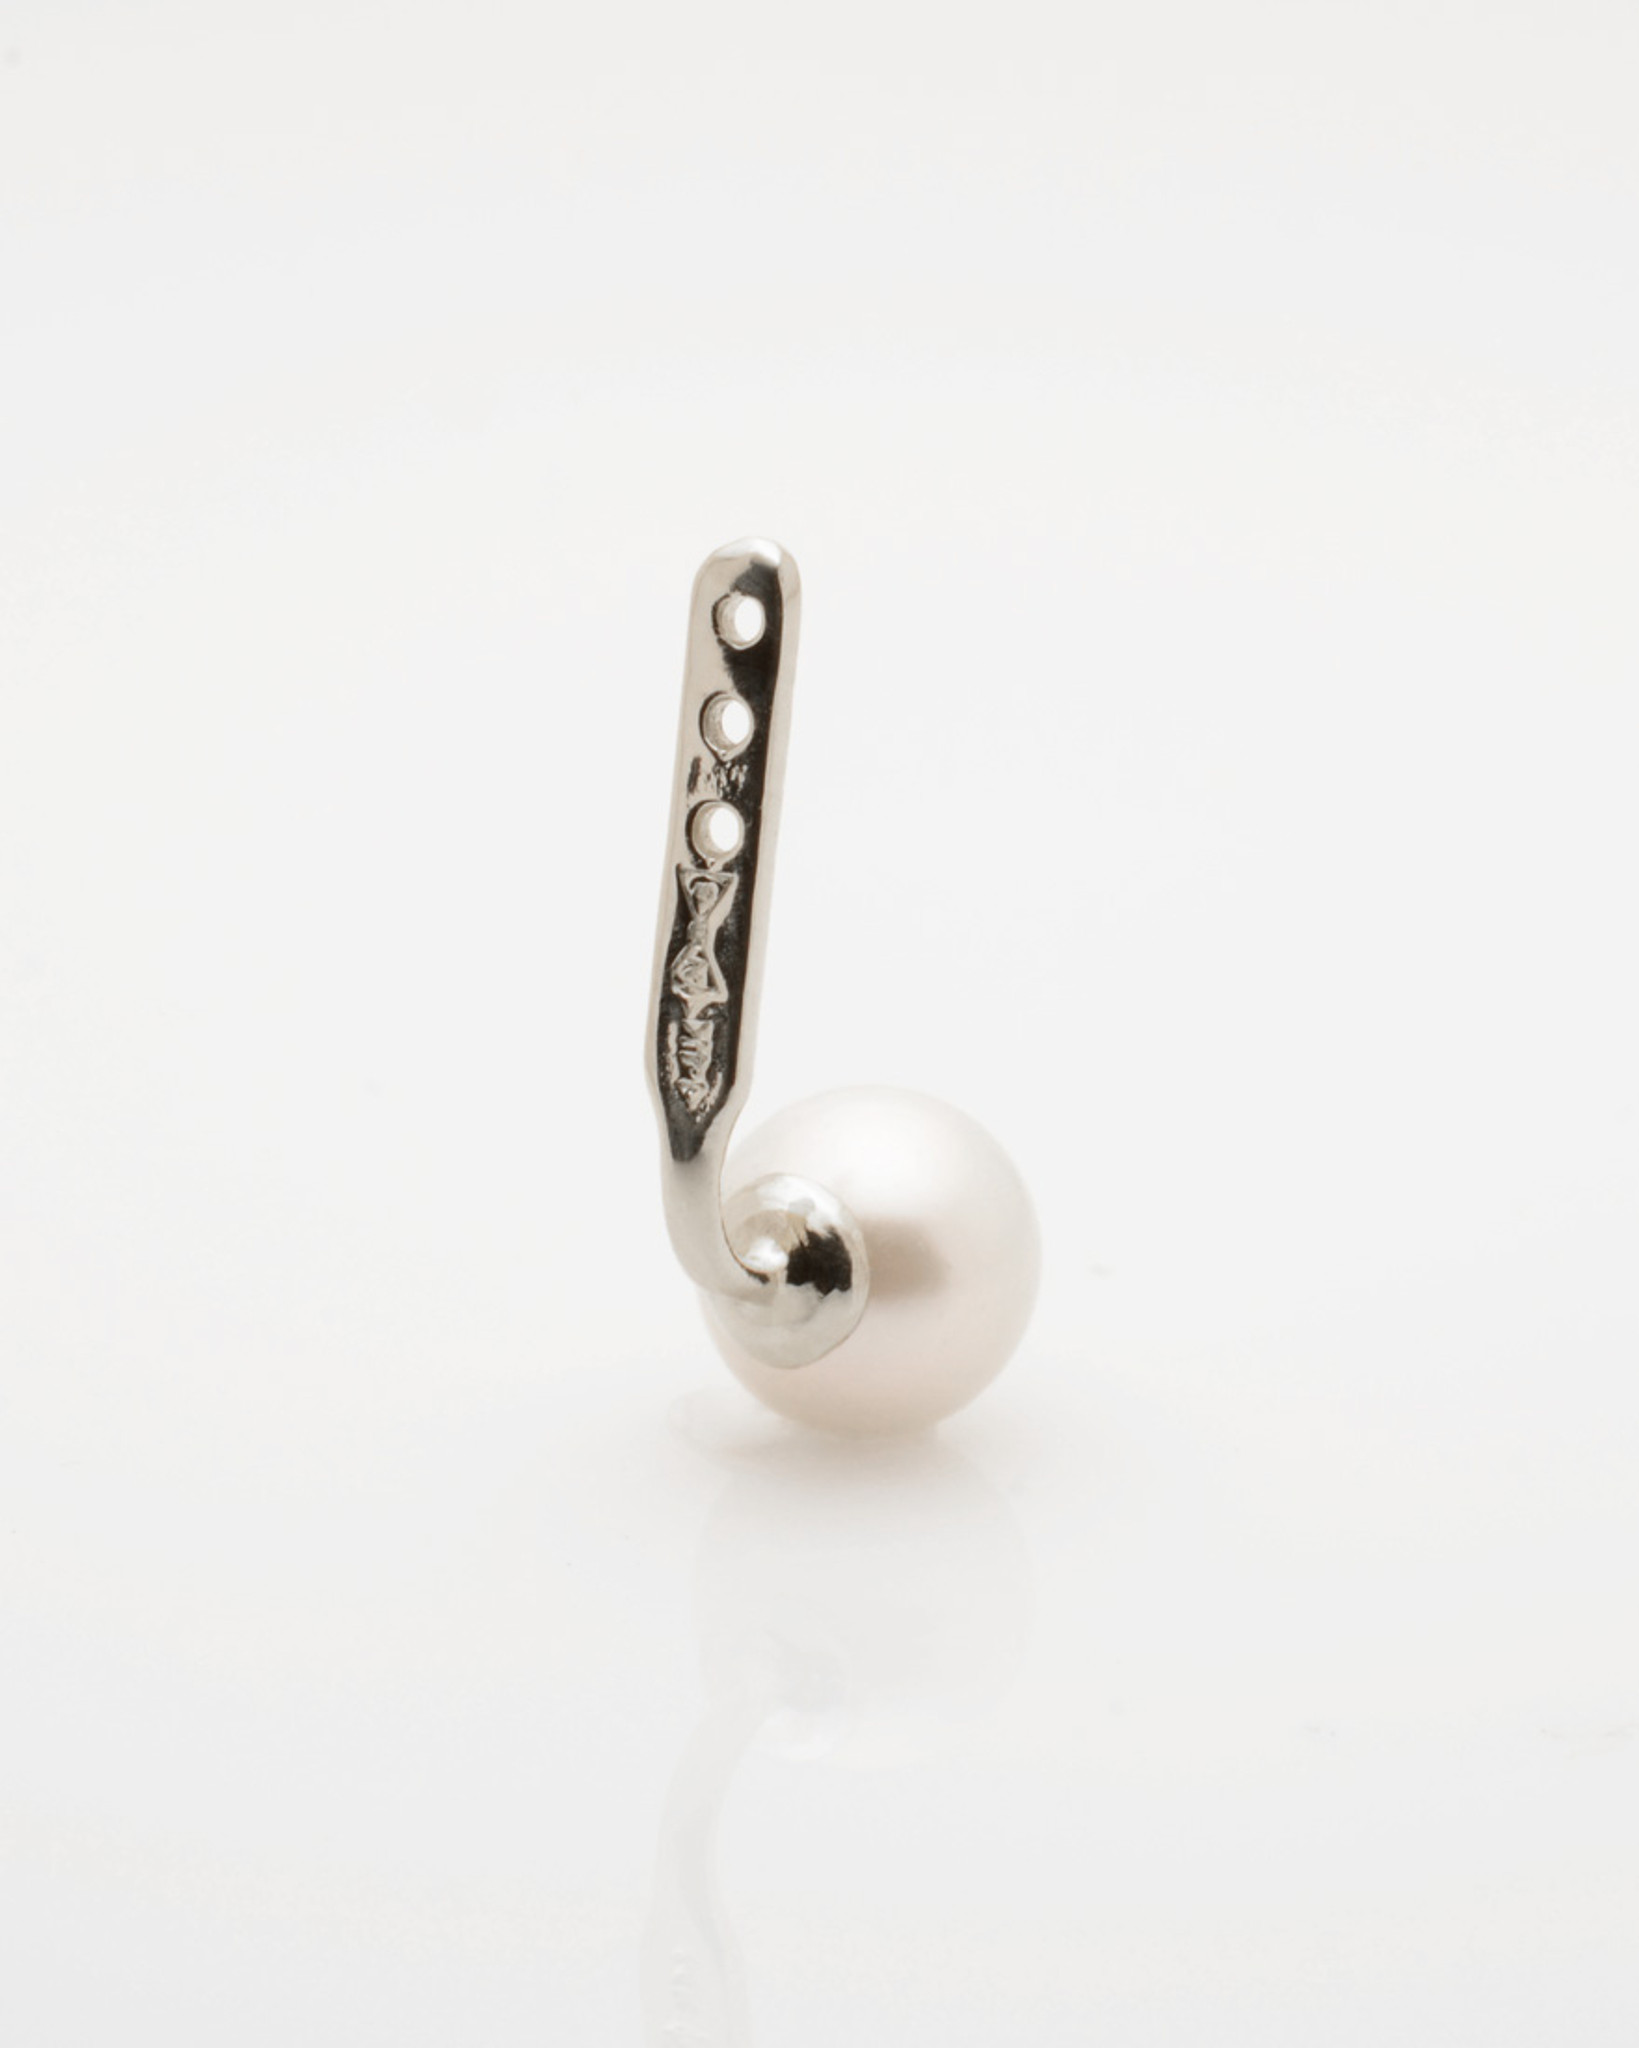 Back view Cultured Freshwater Pearl Single Earring Jacket with Spike in Sterling Silver by Jewelry Designer Nektar De Stagni (6-mm)